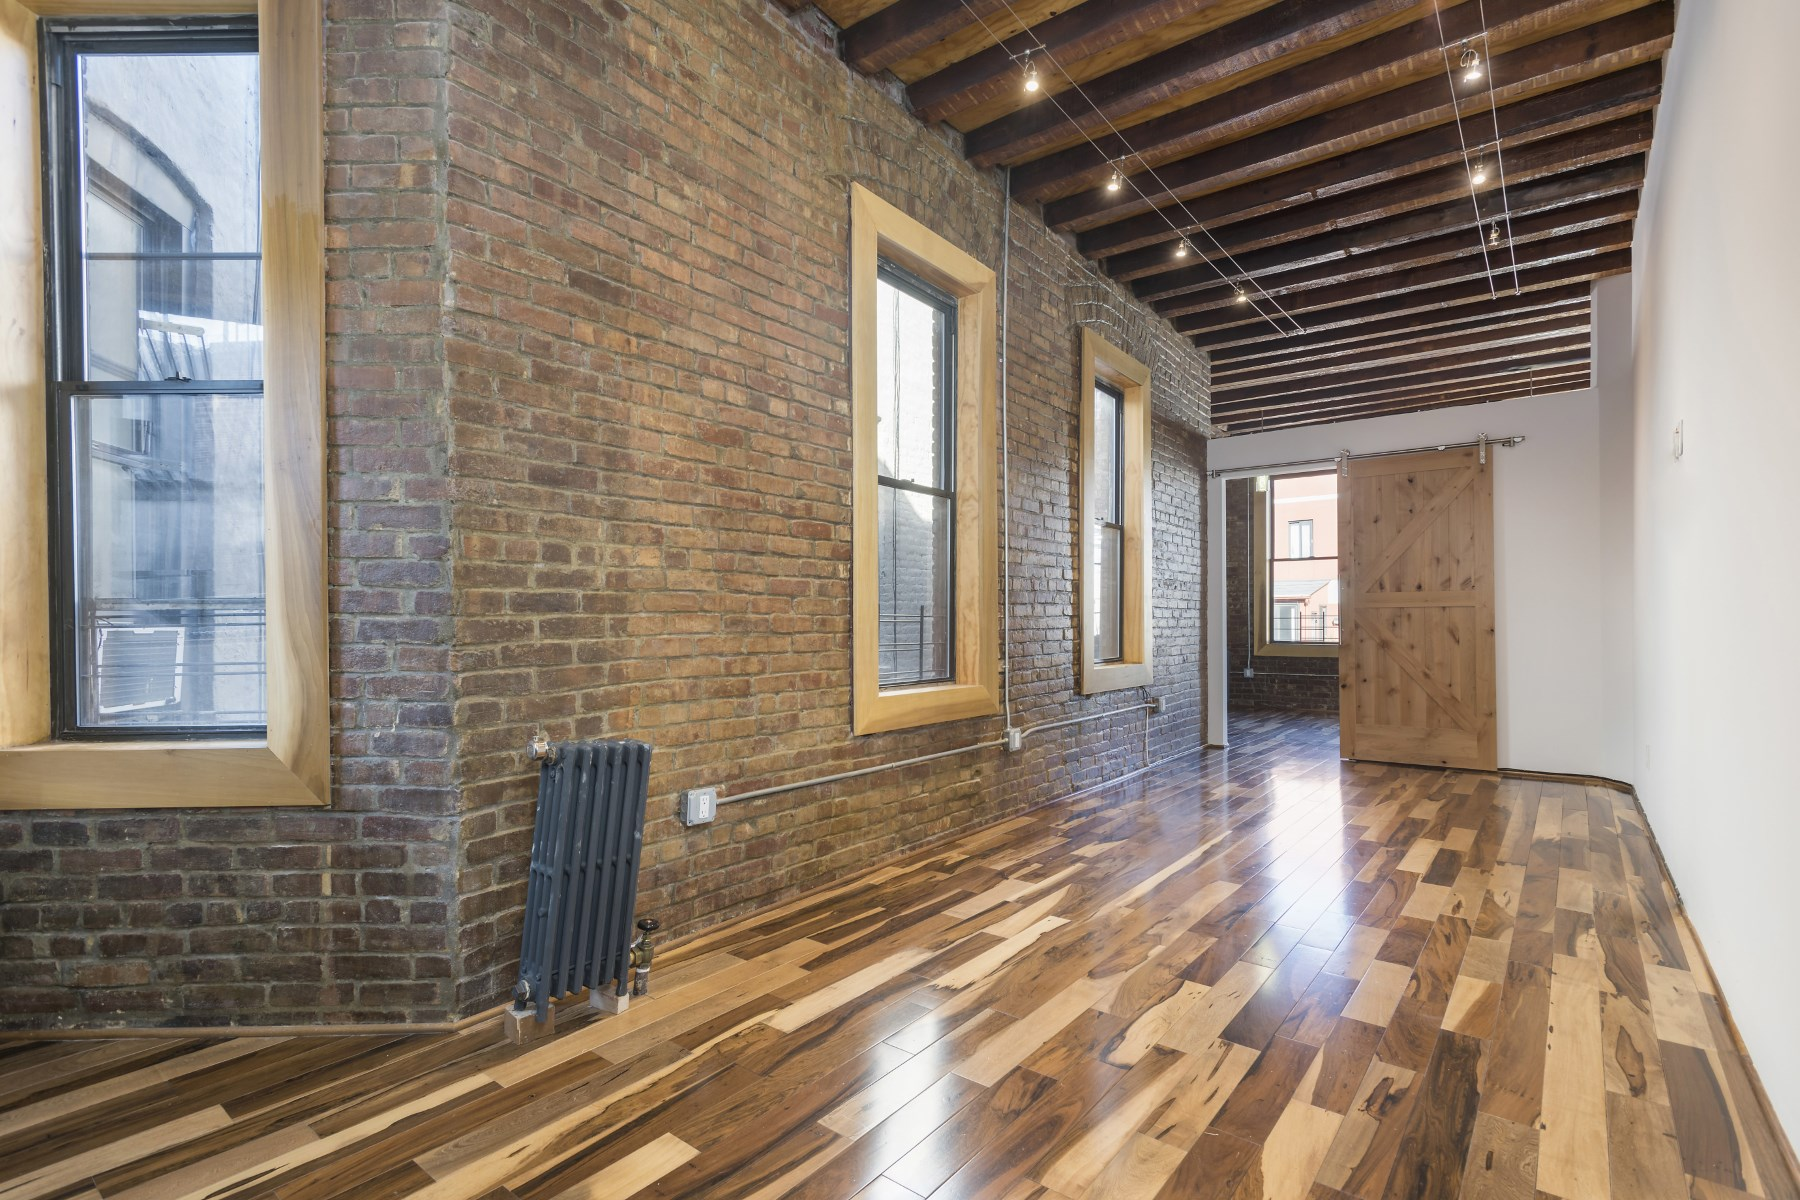 Co-op for Sale at 228 East 13th Street 228 East 13th Street Apt 25 East Village, New York, New York 10003 United States